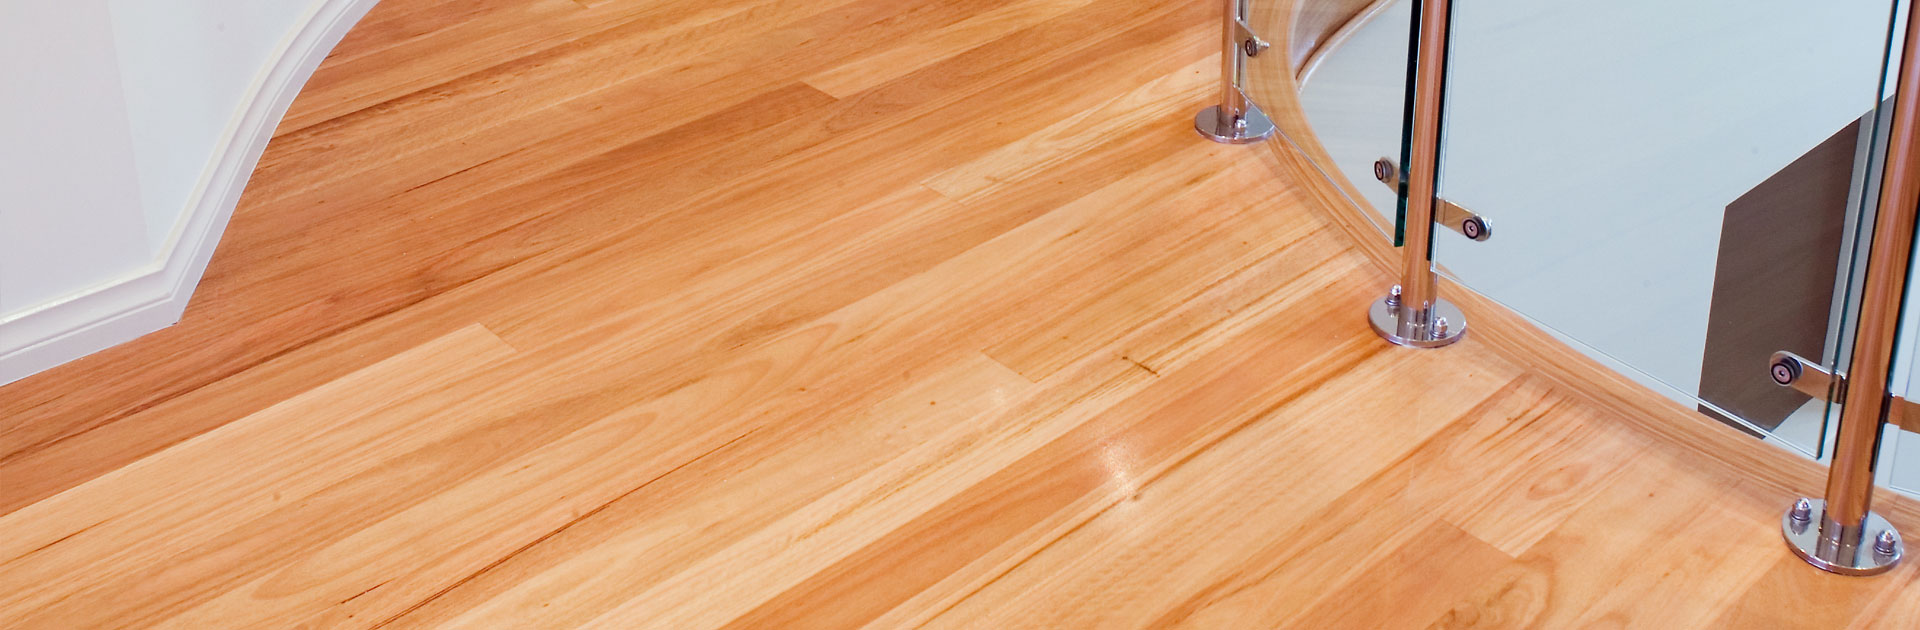 Home Renovation Guide – Can Timber Flooring Be The Best Choice?